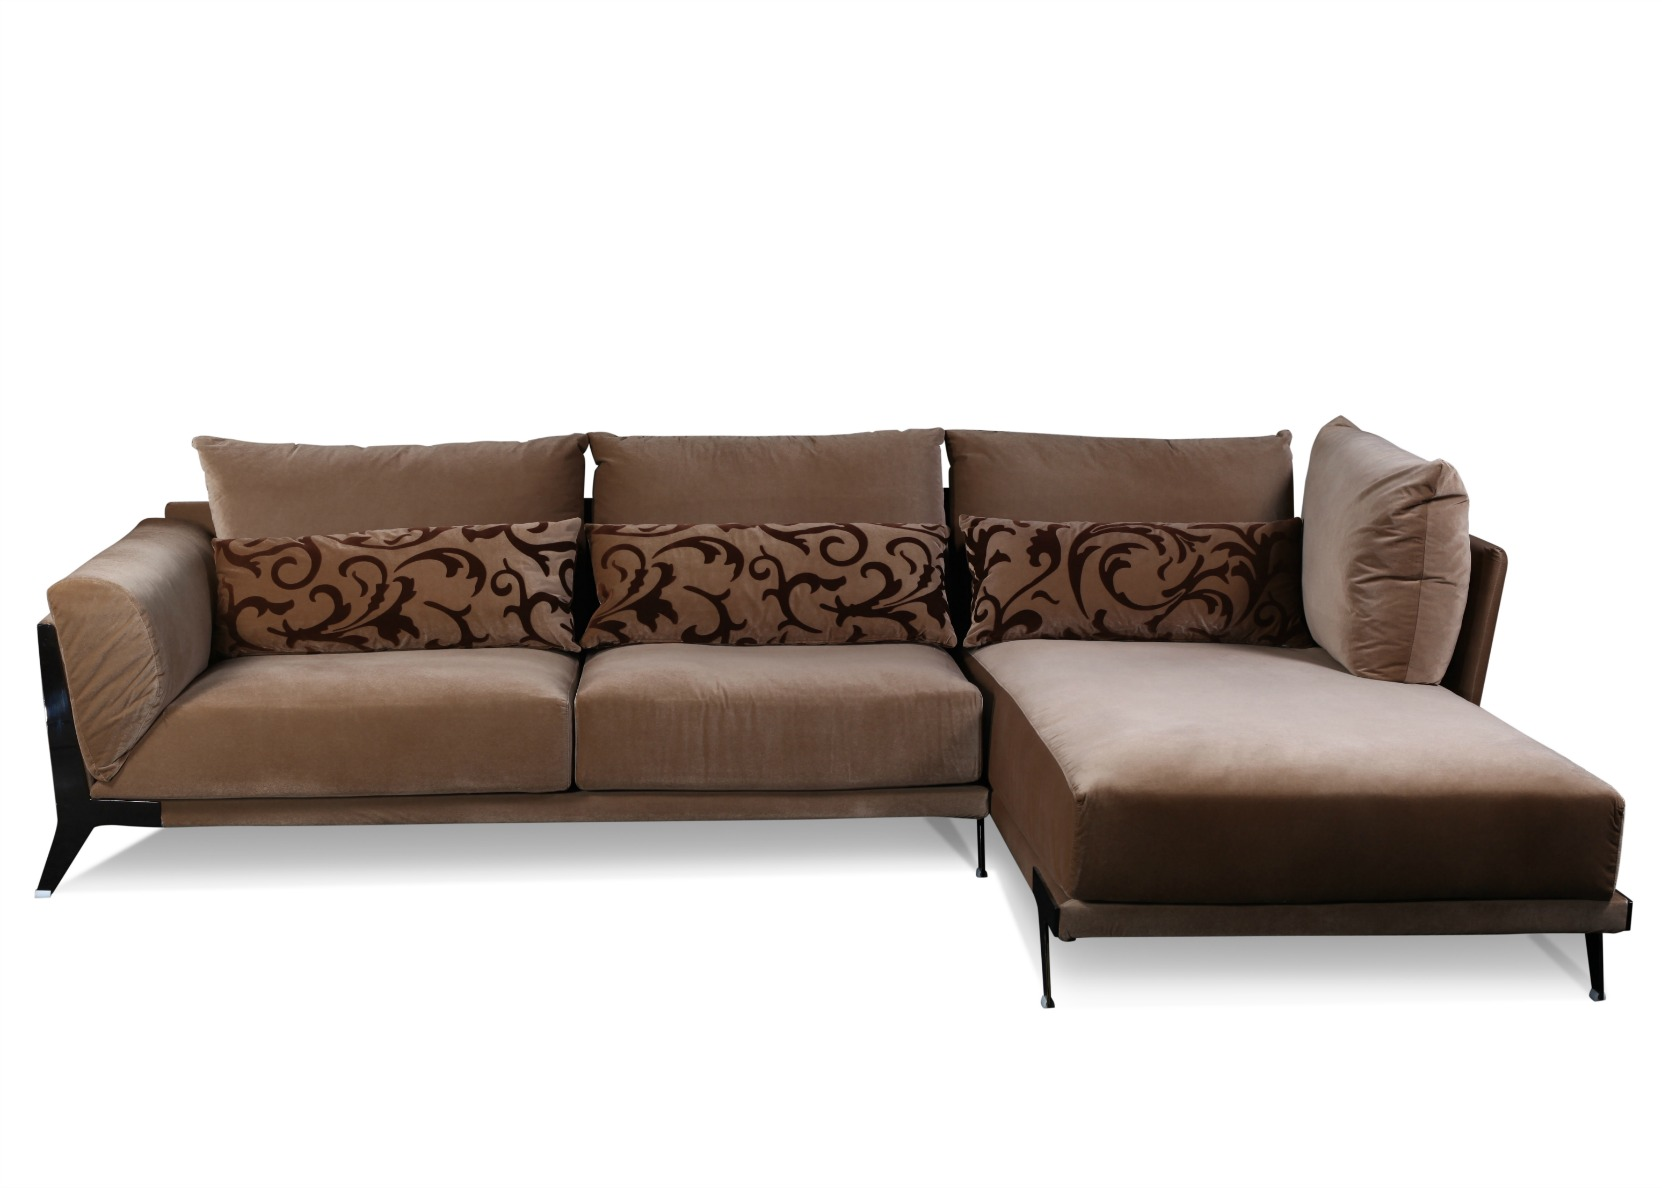 best sofa living inspiration century sectional mid your room modern with for